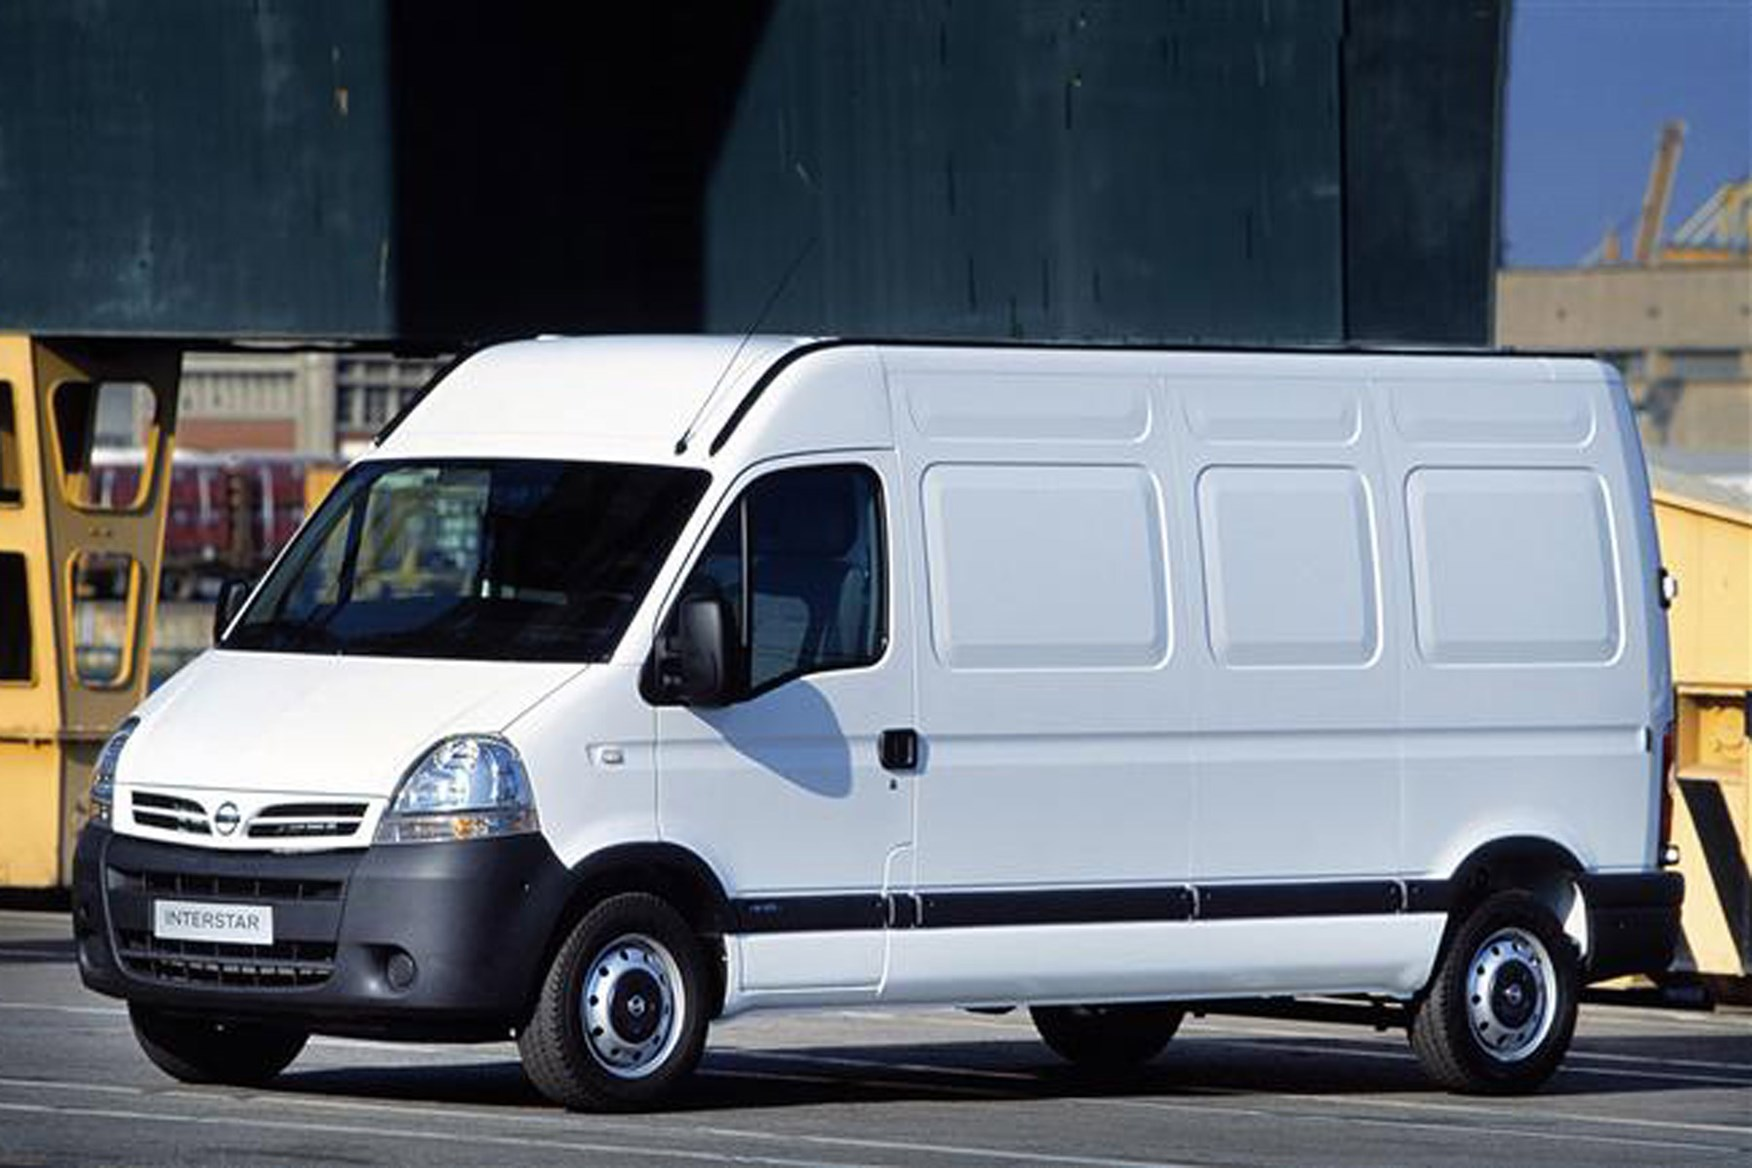 be7ca63c534e10 Nissan Interstar 2003-2011 review on Parkers Vans - exterior